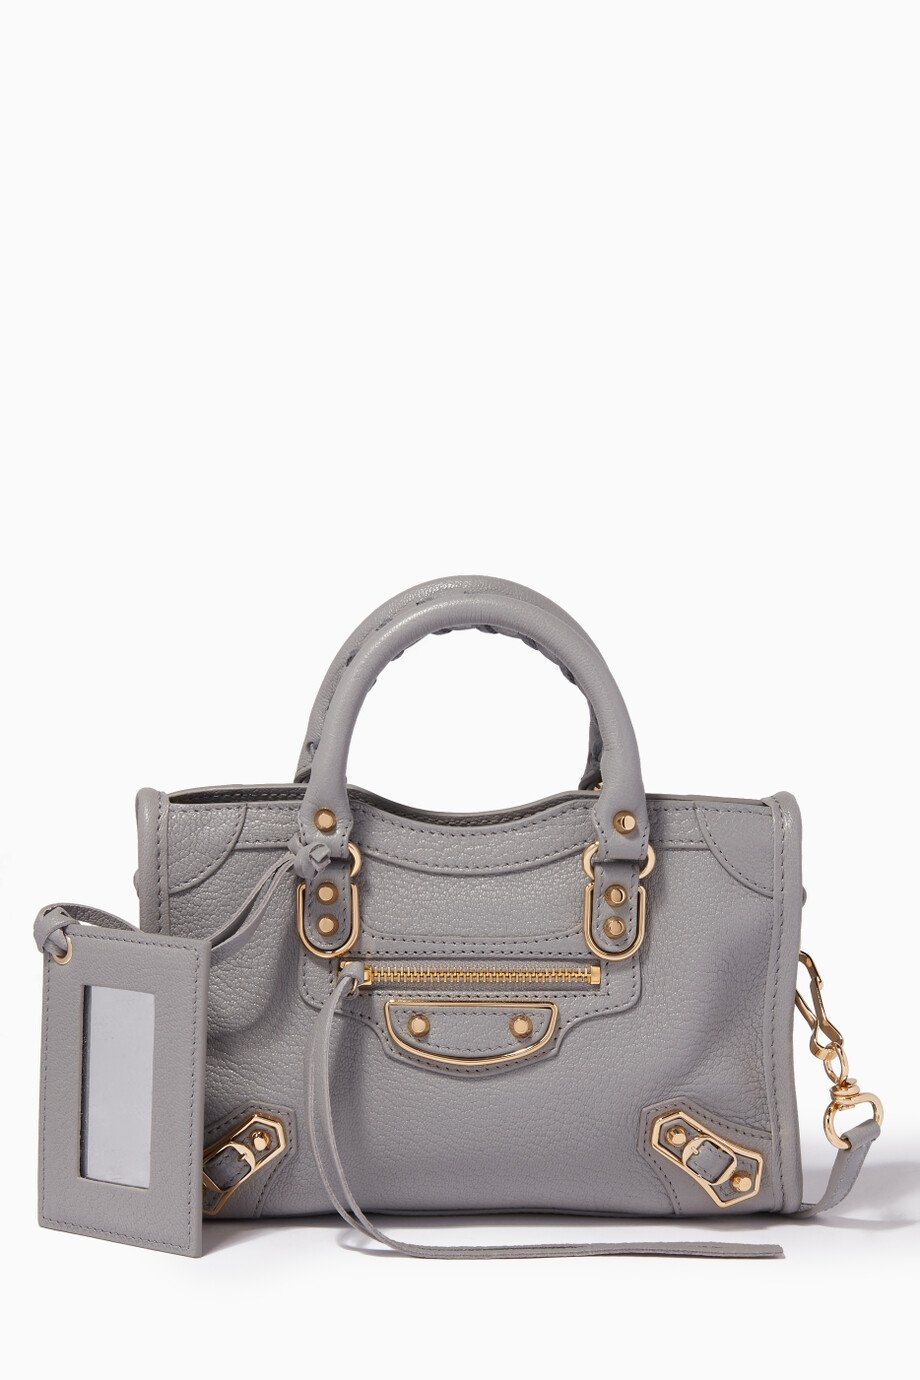 e3e8ecd872 Shop Balenciaga Grey Grey Nano Classic Metallic Edge City Cross ...